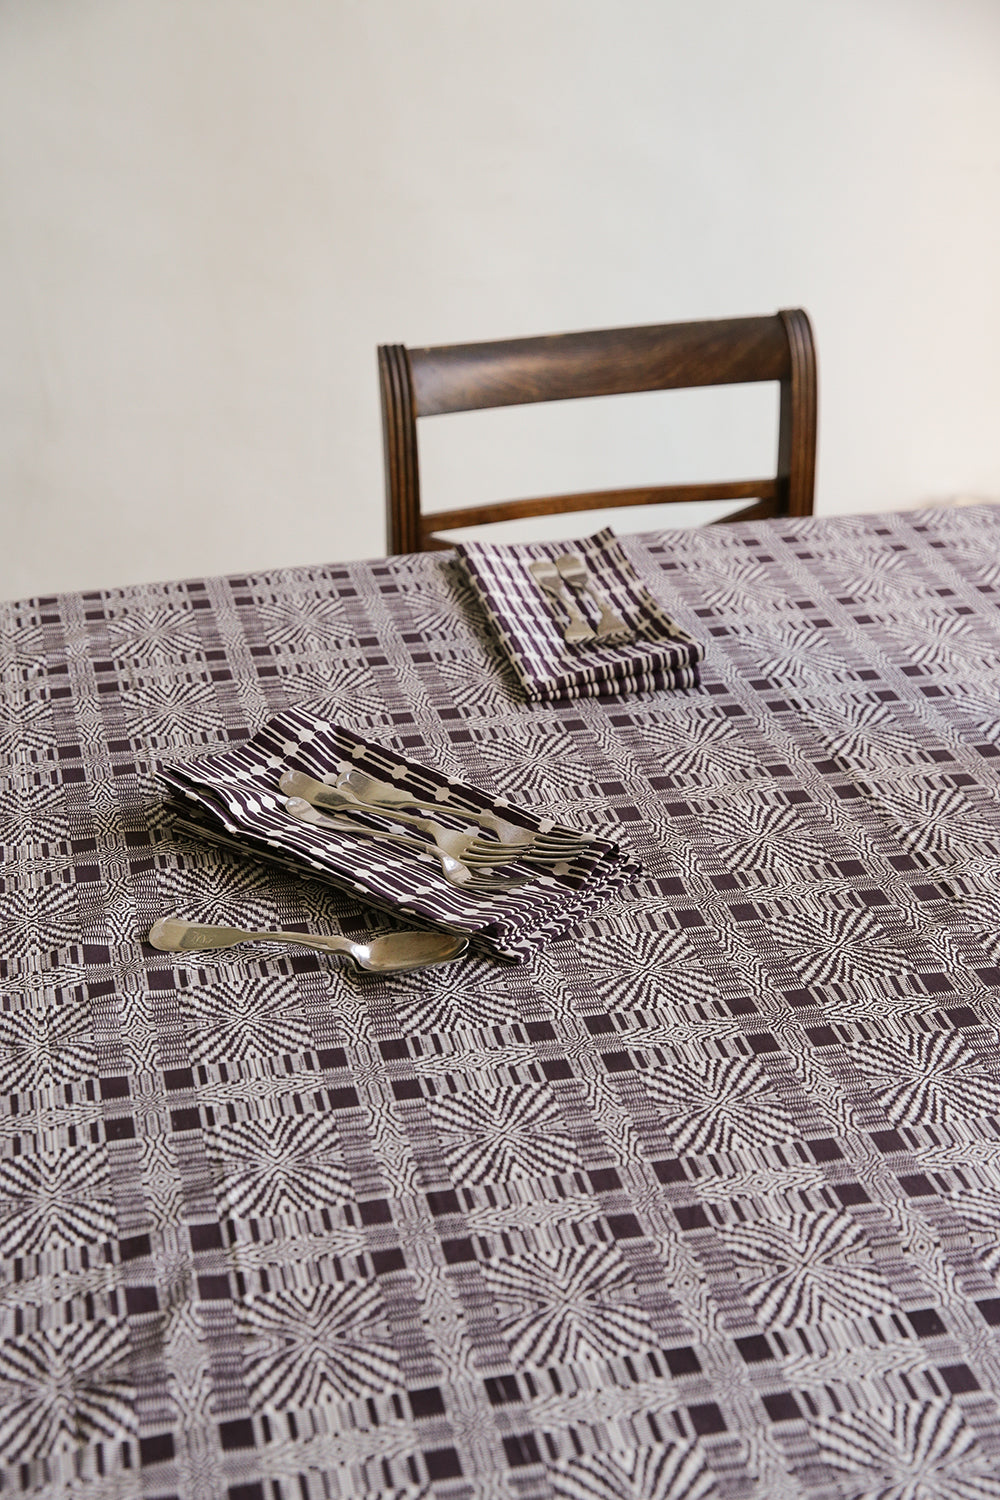 tablecloth in edgar allan poe